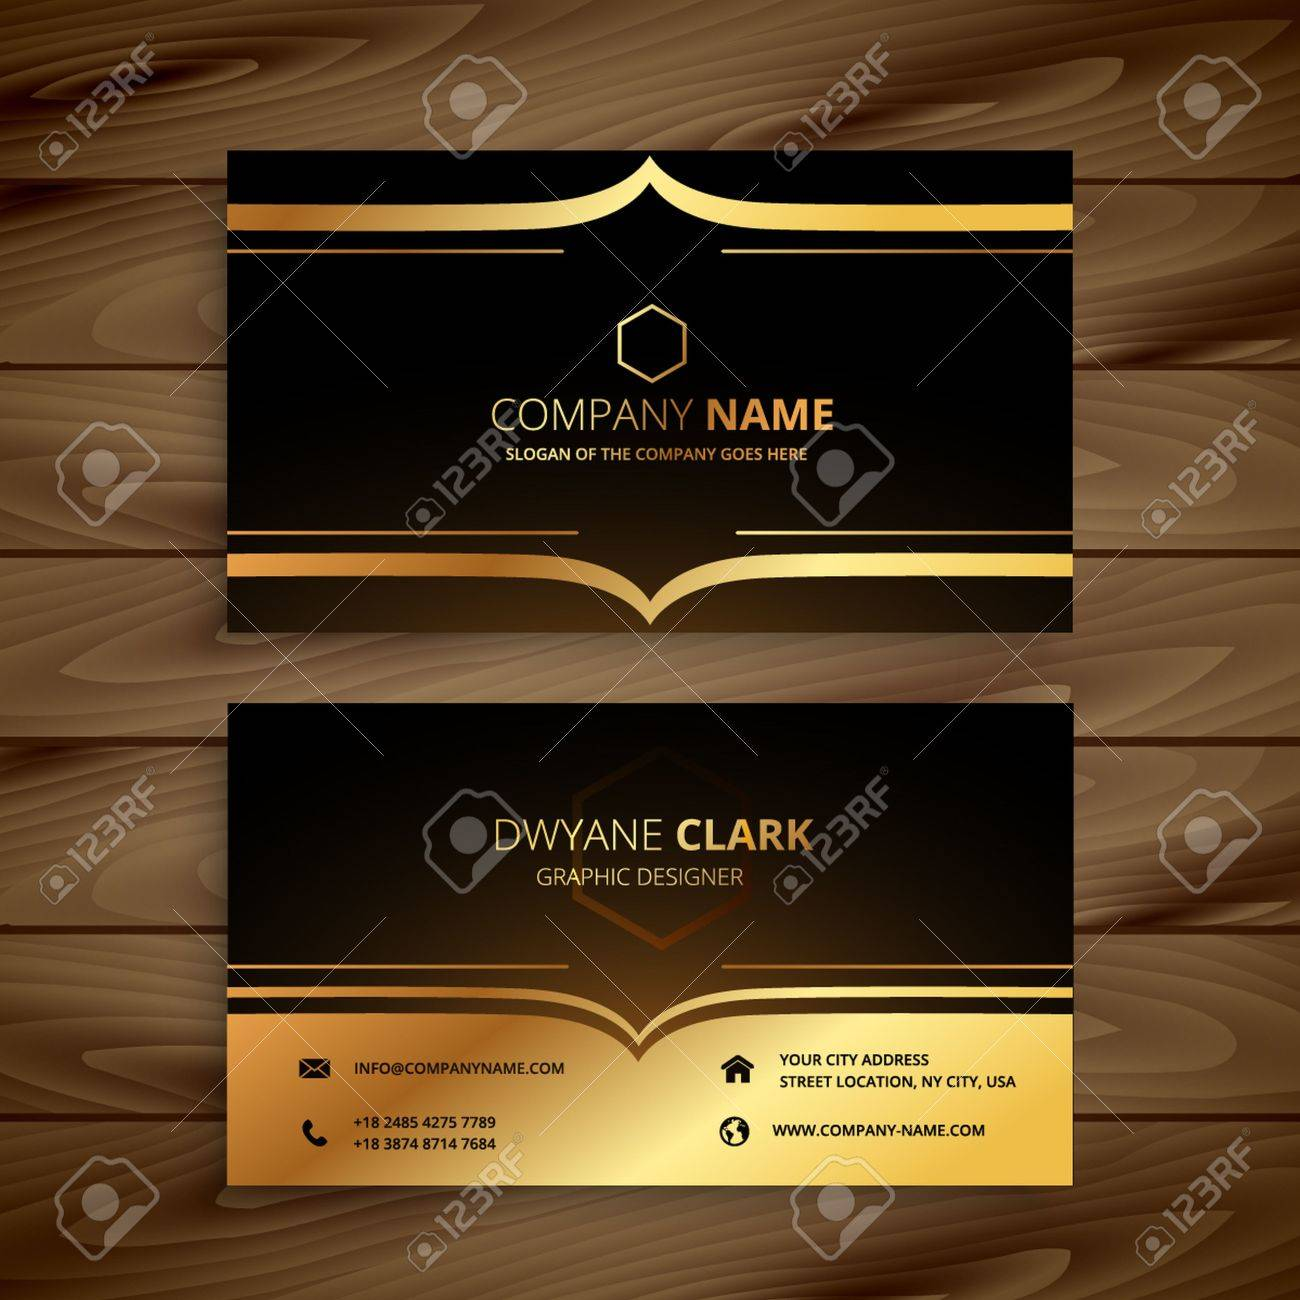 Luxury business card royalty free cliparts vectors and stock luxury business card stock vector 53482041 colourmoves